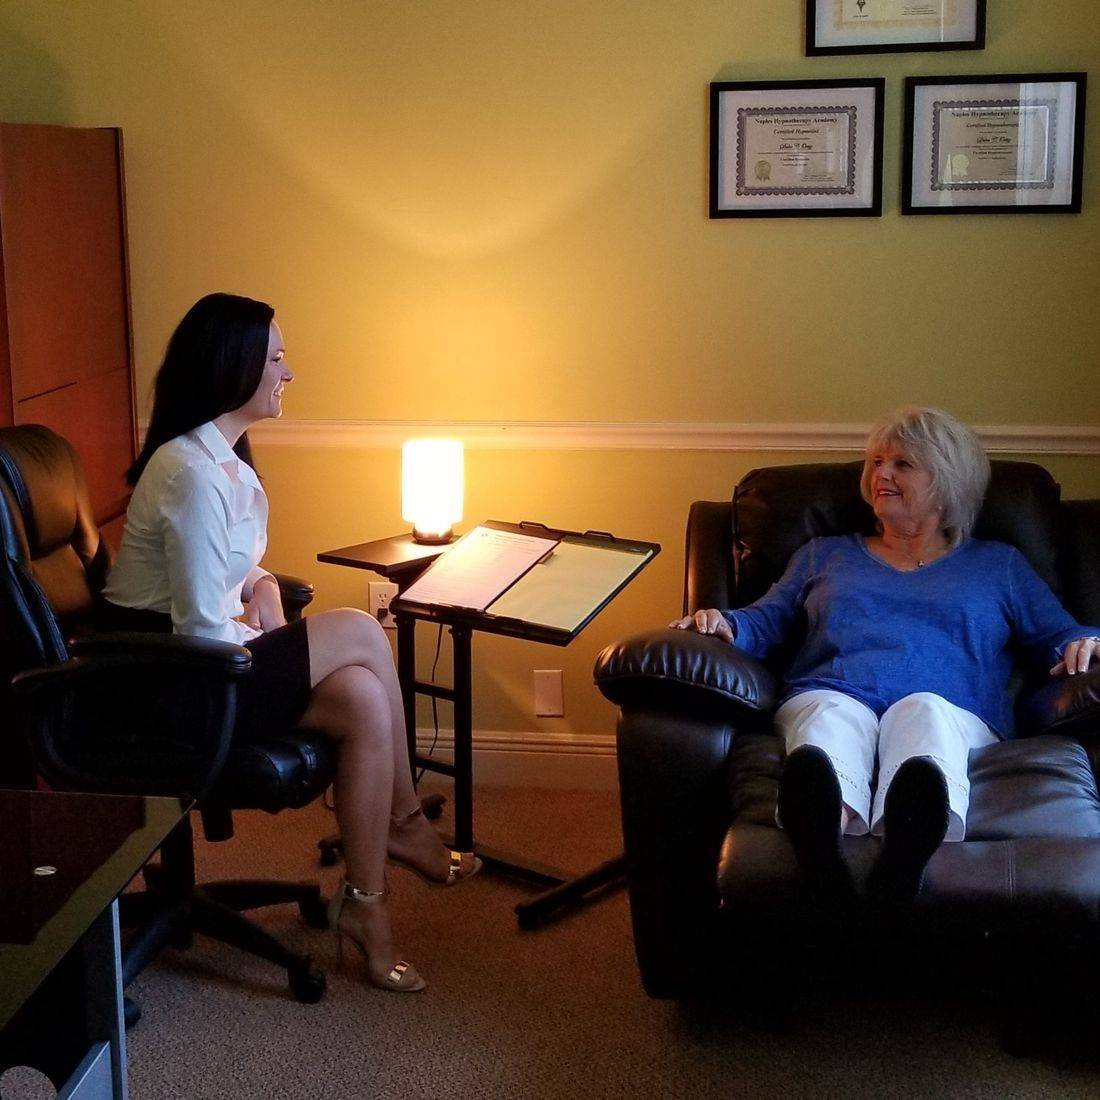 Hypnosis, Student, classes, Practicum, Naples, Hypnotherapy class, Certification, Certified Hypnotherapist